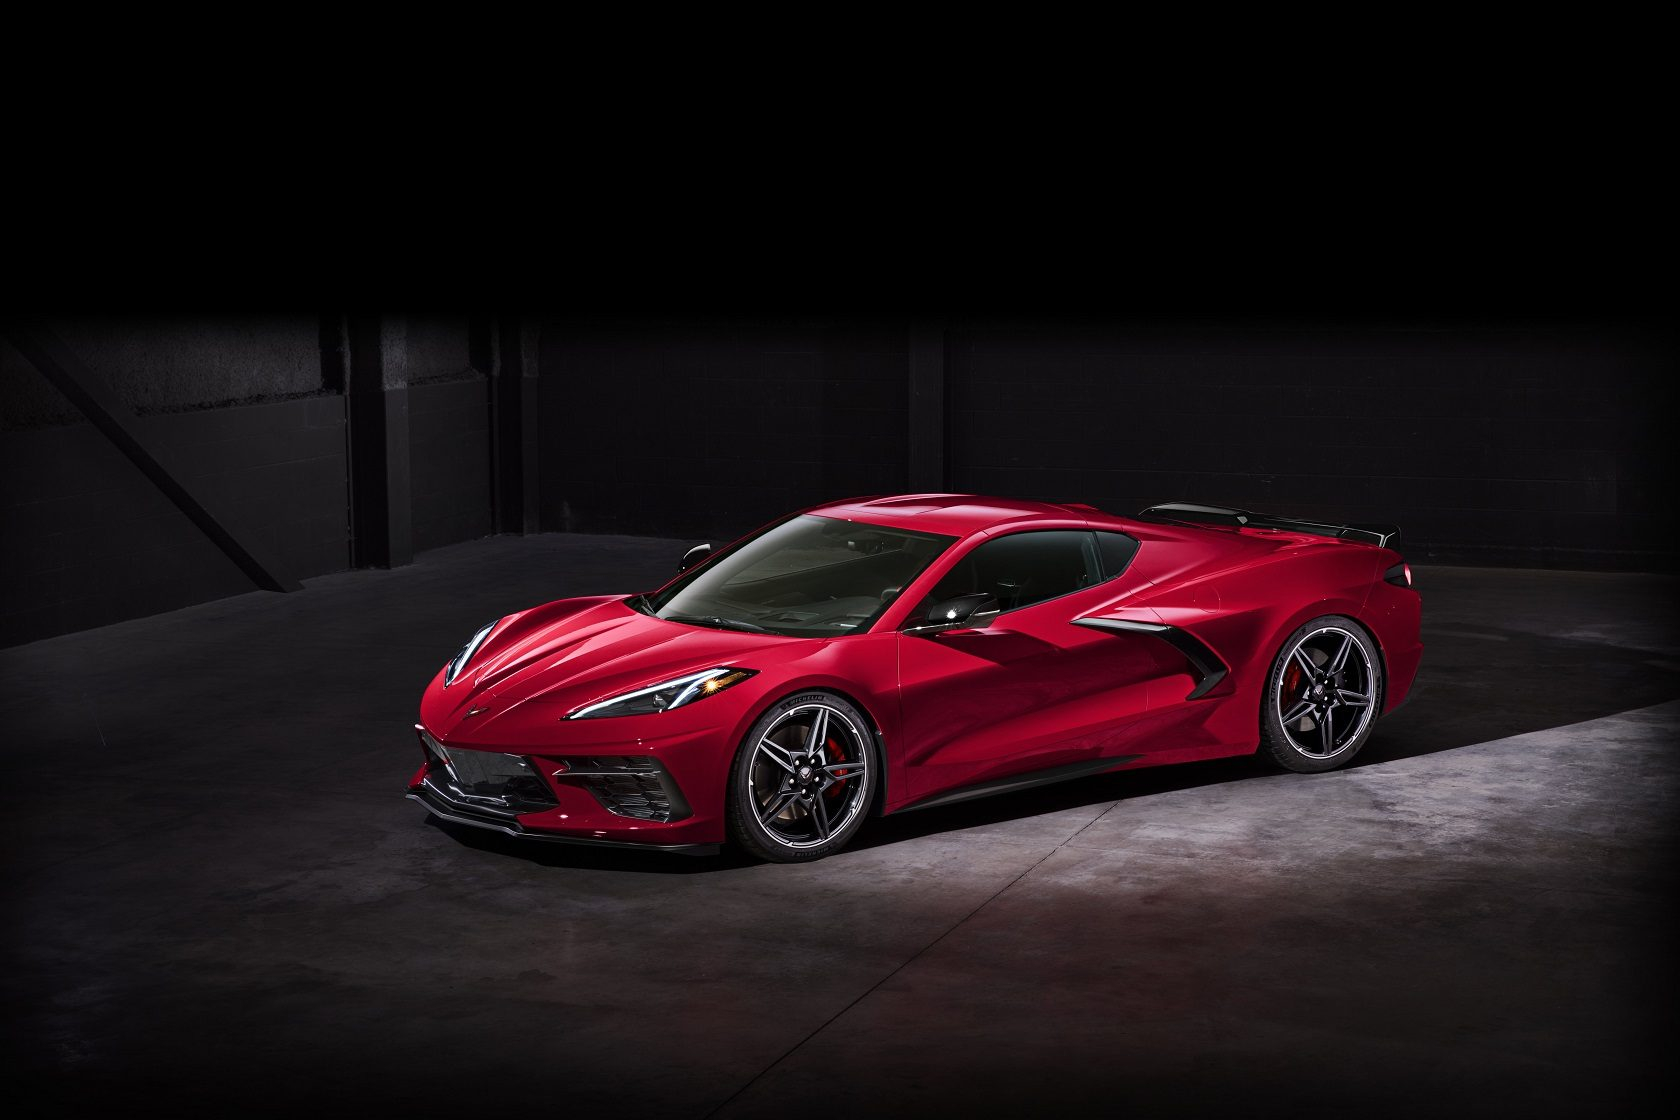 Chevrolet Introduces The First Ever Mid-Engine Corvette 2021 Chevrolet Corvette Stingray Manual, Models, Owners Manual